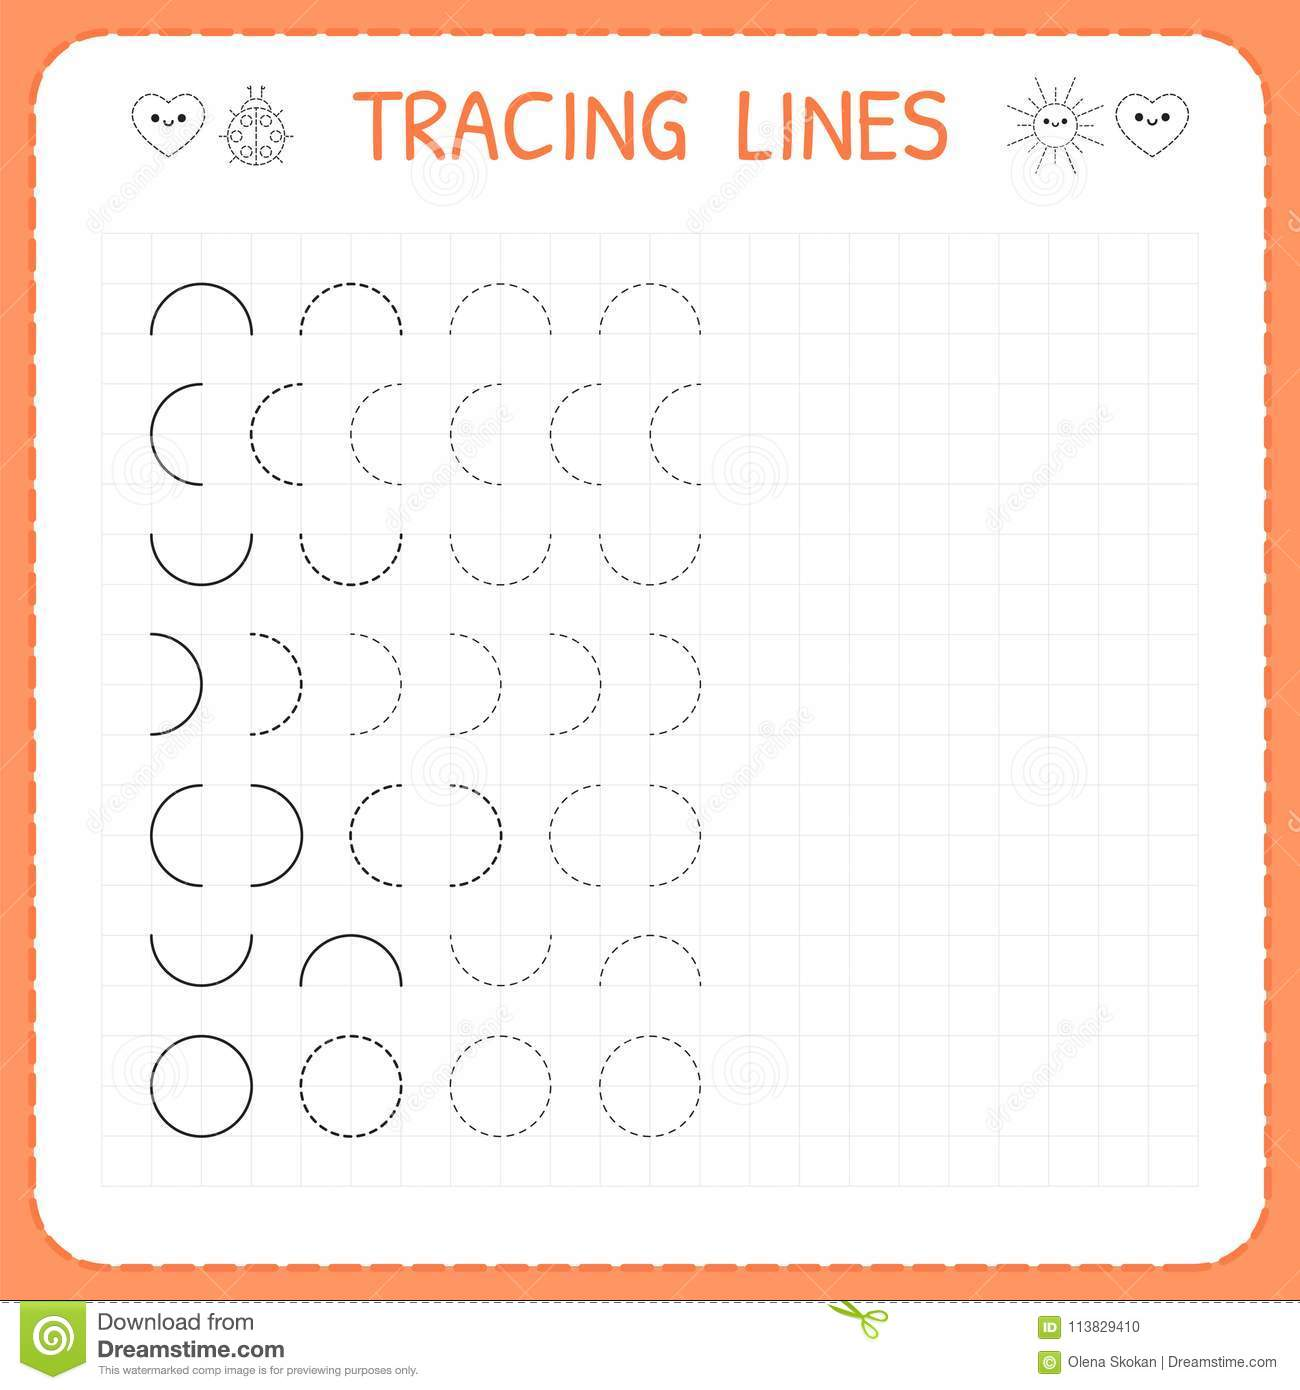 Tracing Lines Worksheet For Kids Basic Writing Working Pages For Children Preschool Or